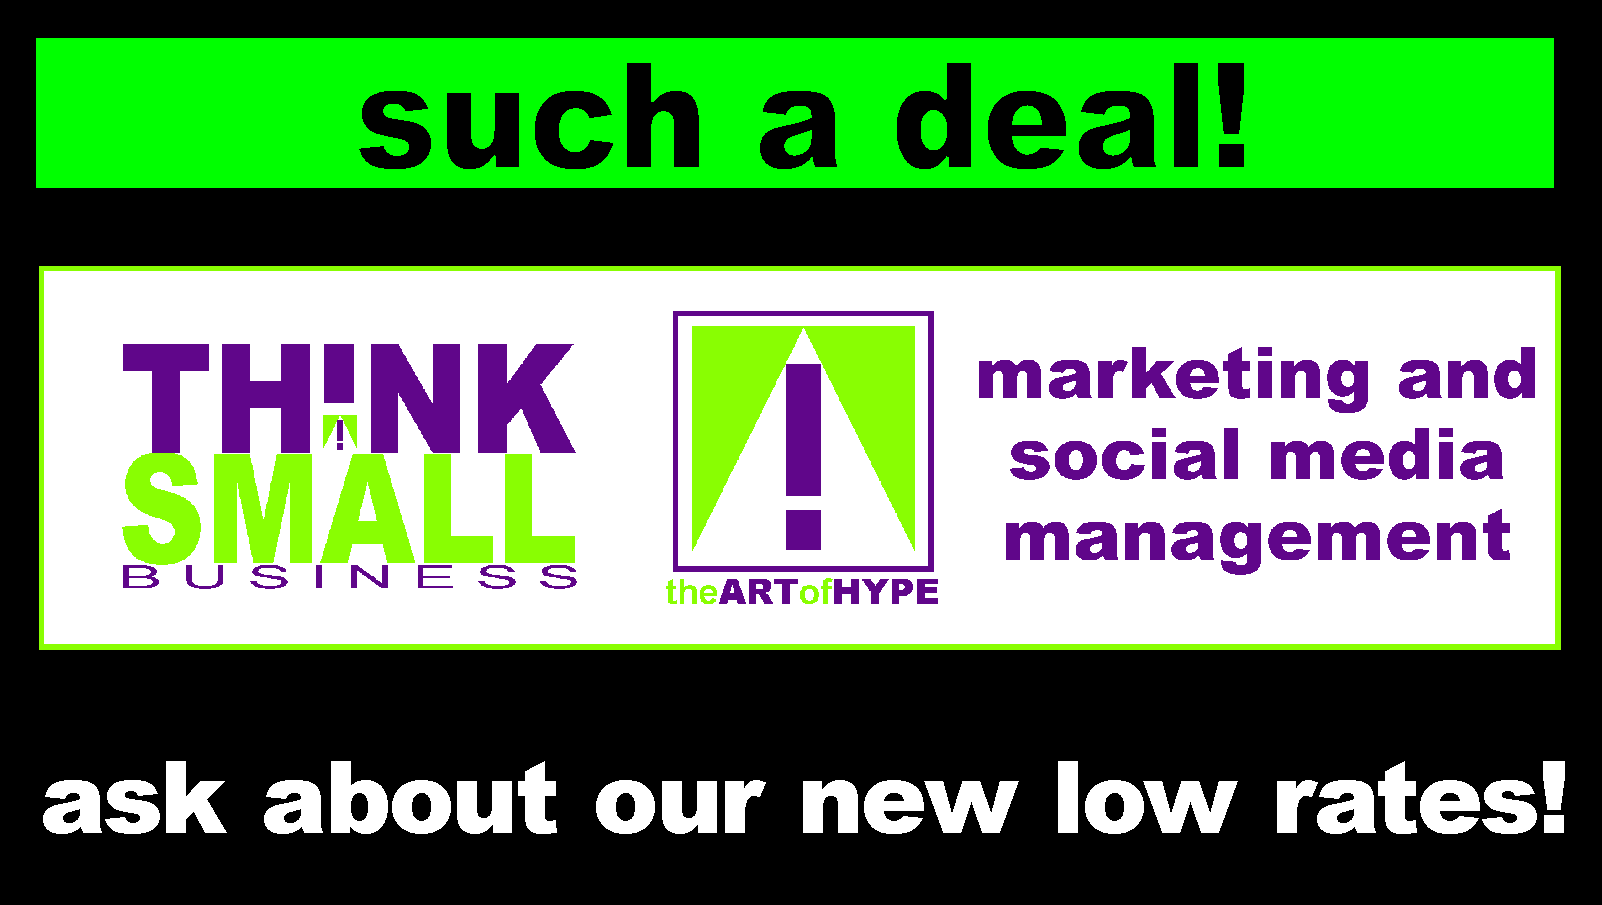 new low rates marketing facebook link